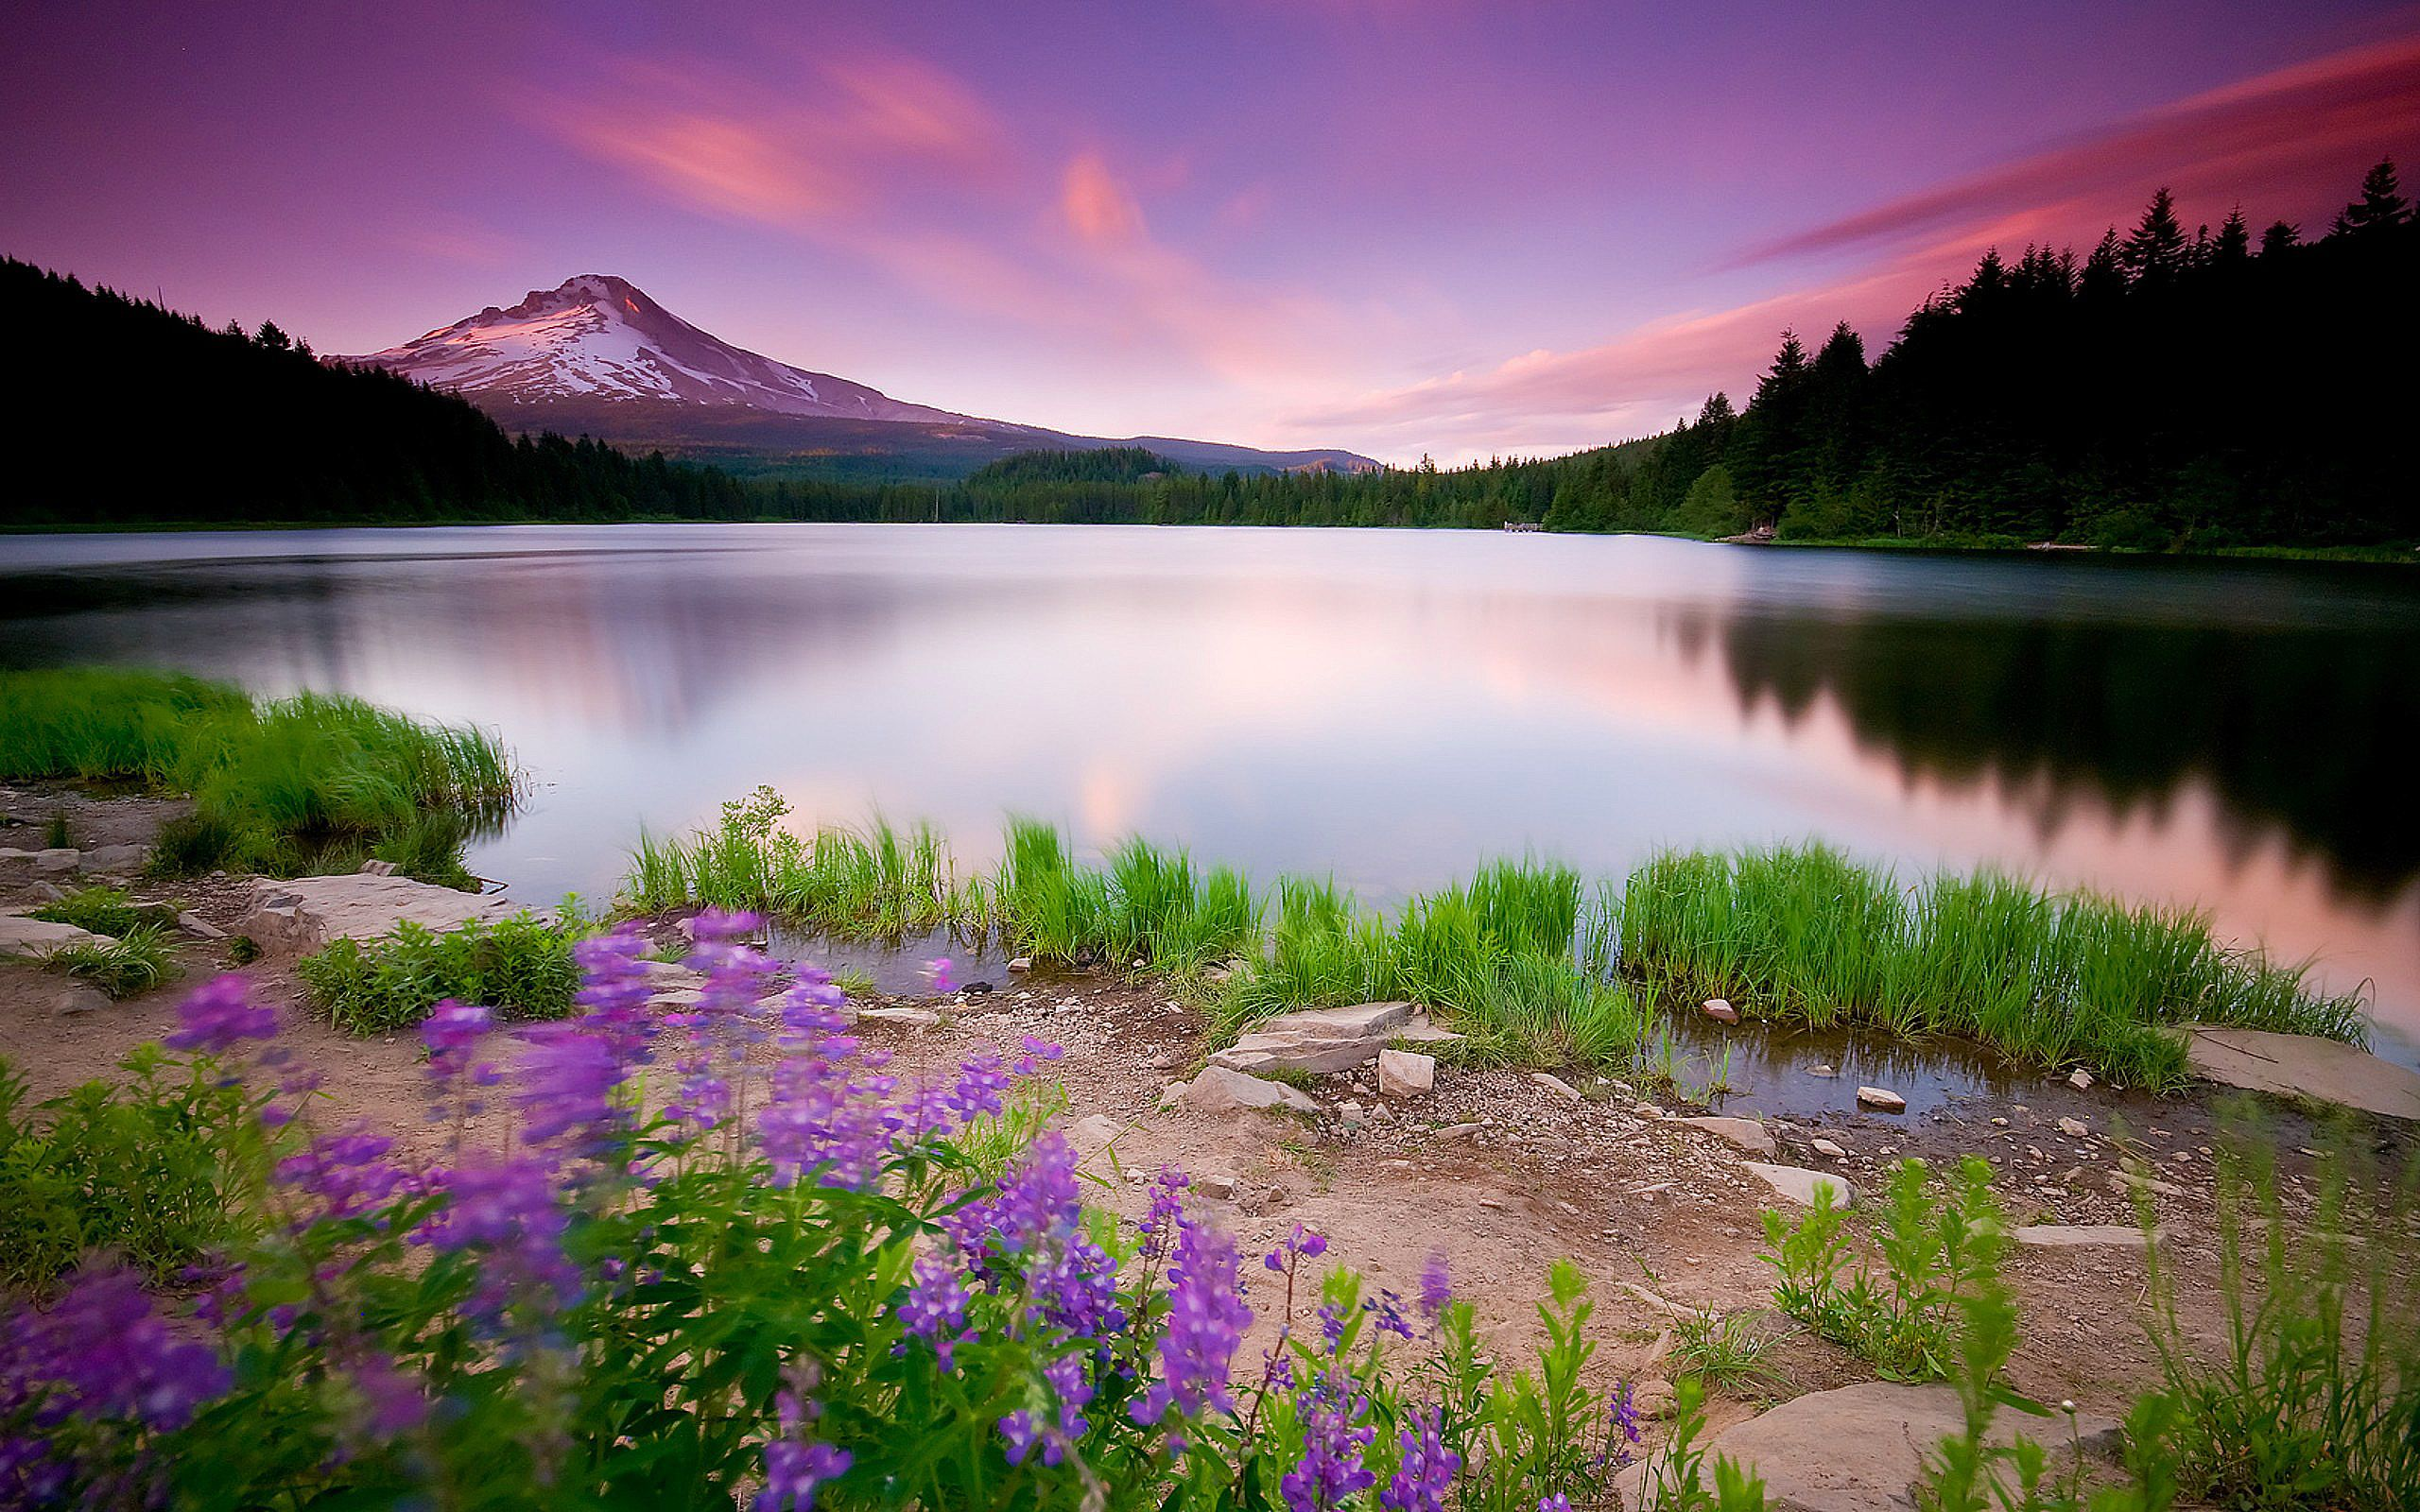 Landscape Photography Wallpapers Top Free Landscape Photography Backgrounds Wallpaperaccess